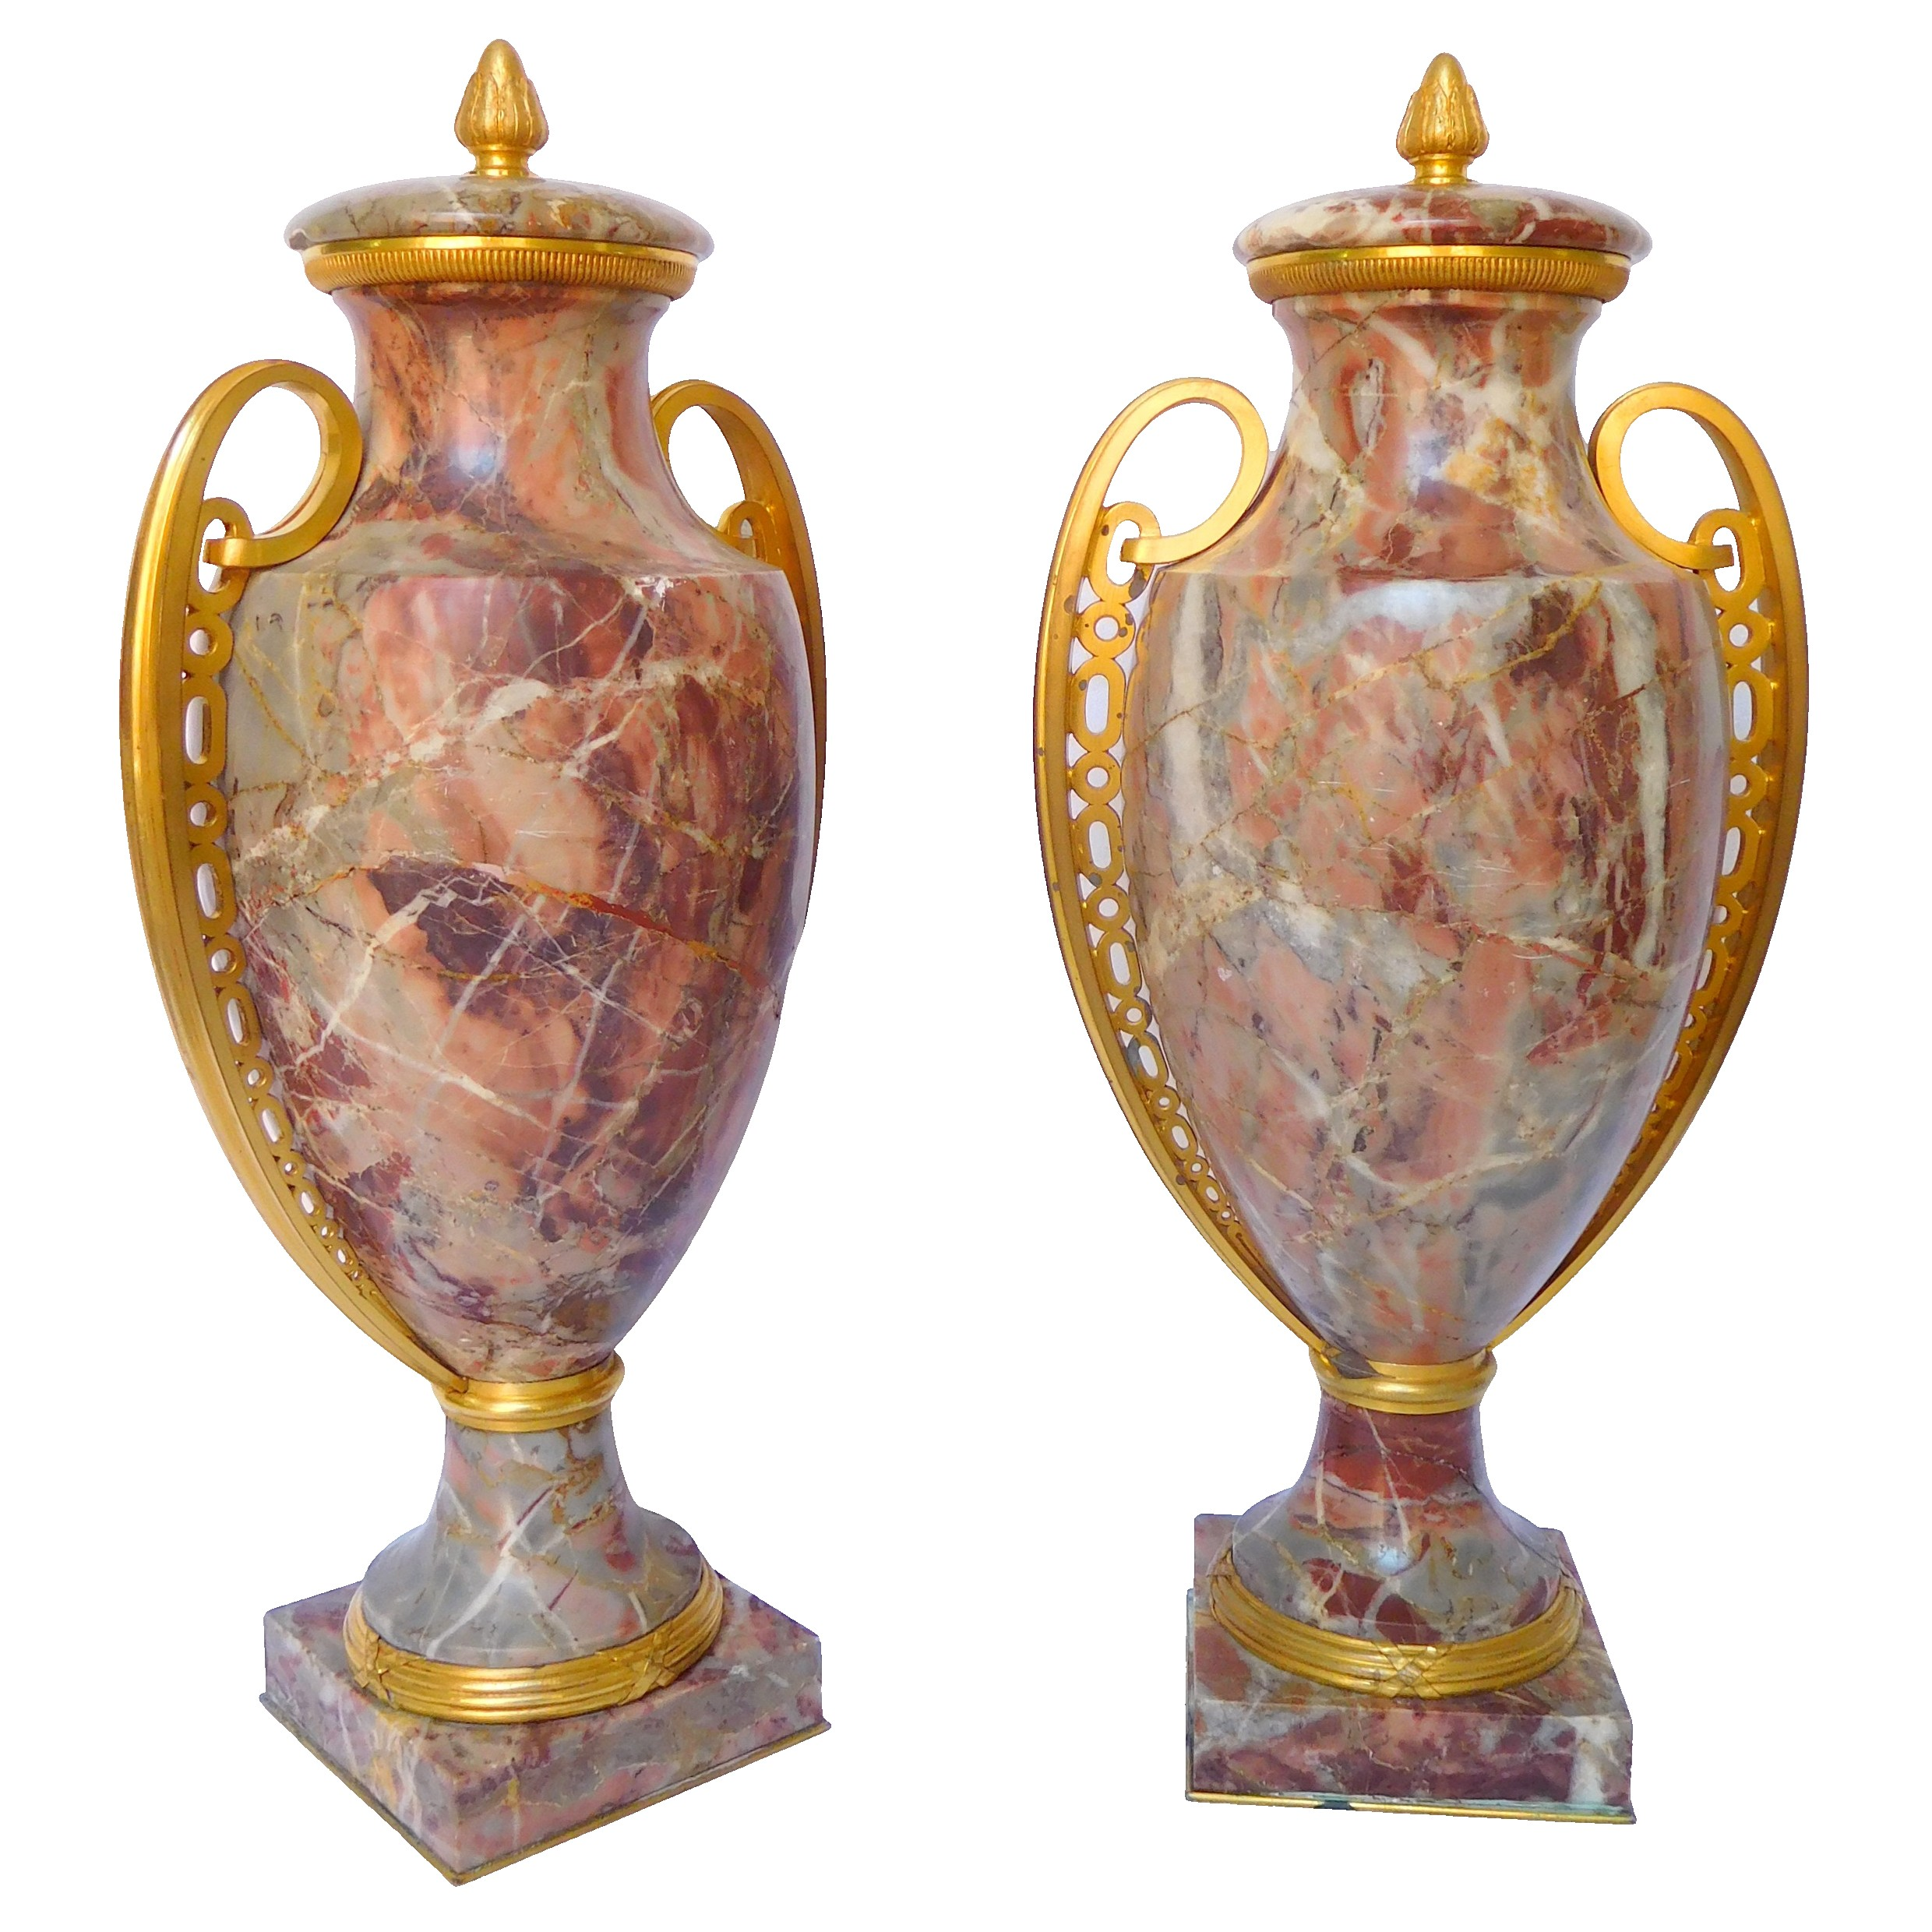 Pair of Louis XVI style vases, ormolu and marbre Art Deco production